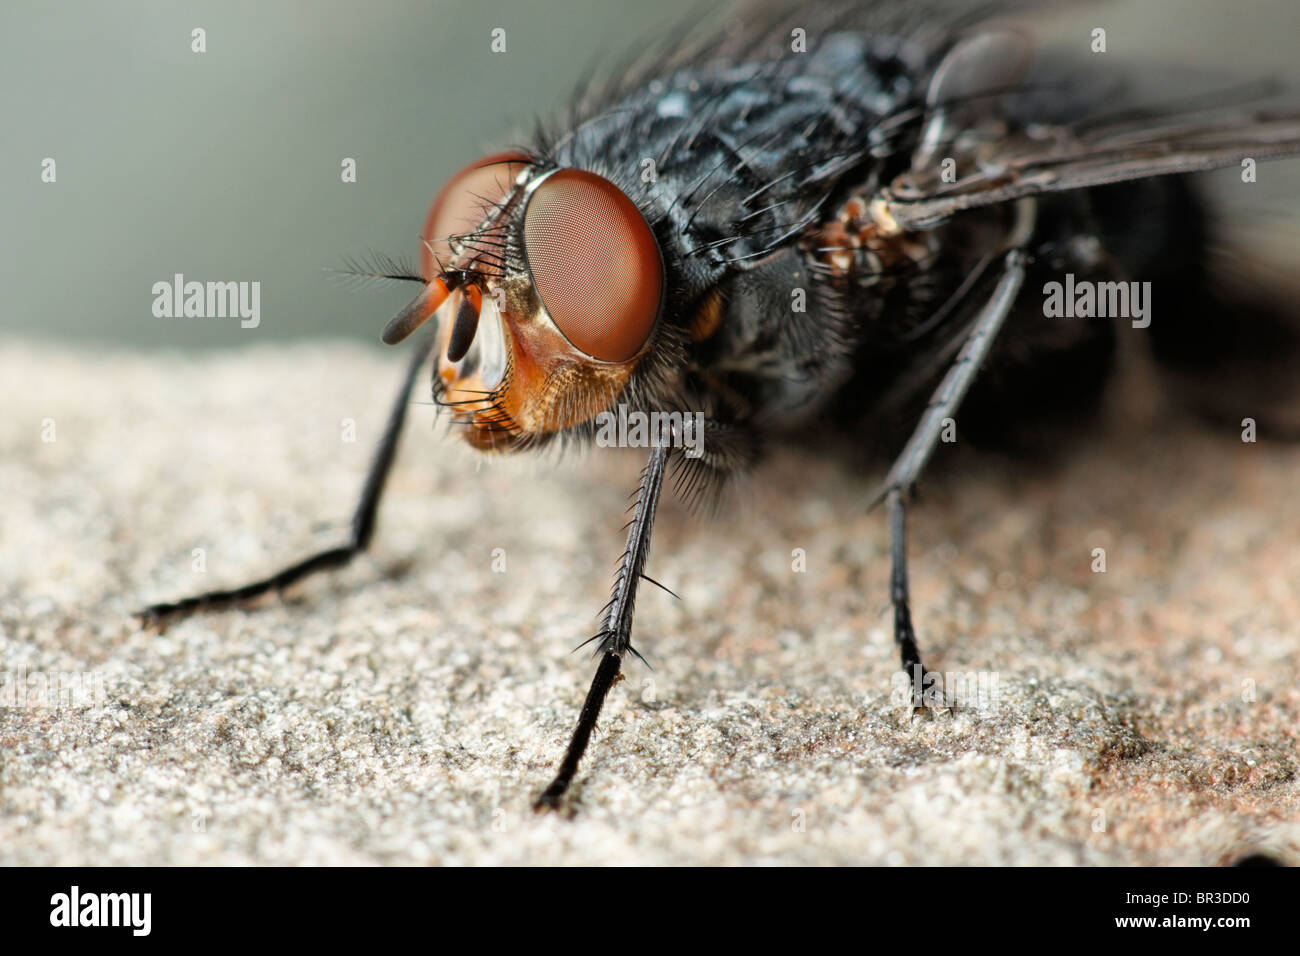 A Fly. Possibly a Common Flesh Fly, Sarcophaga carnaria Stock Photo